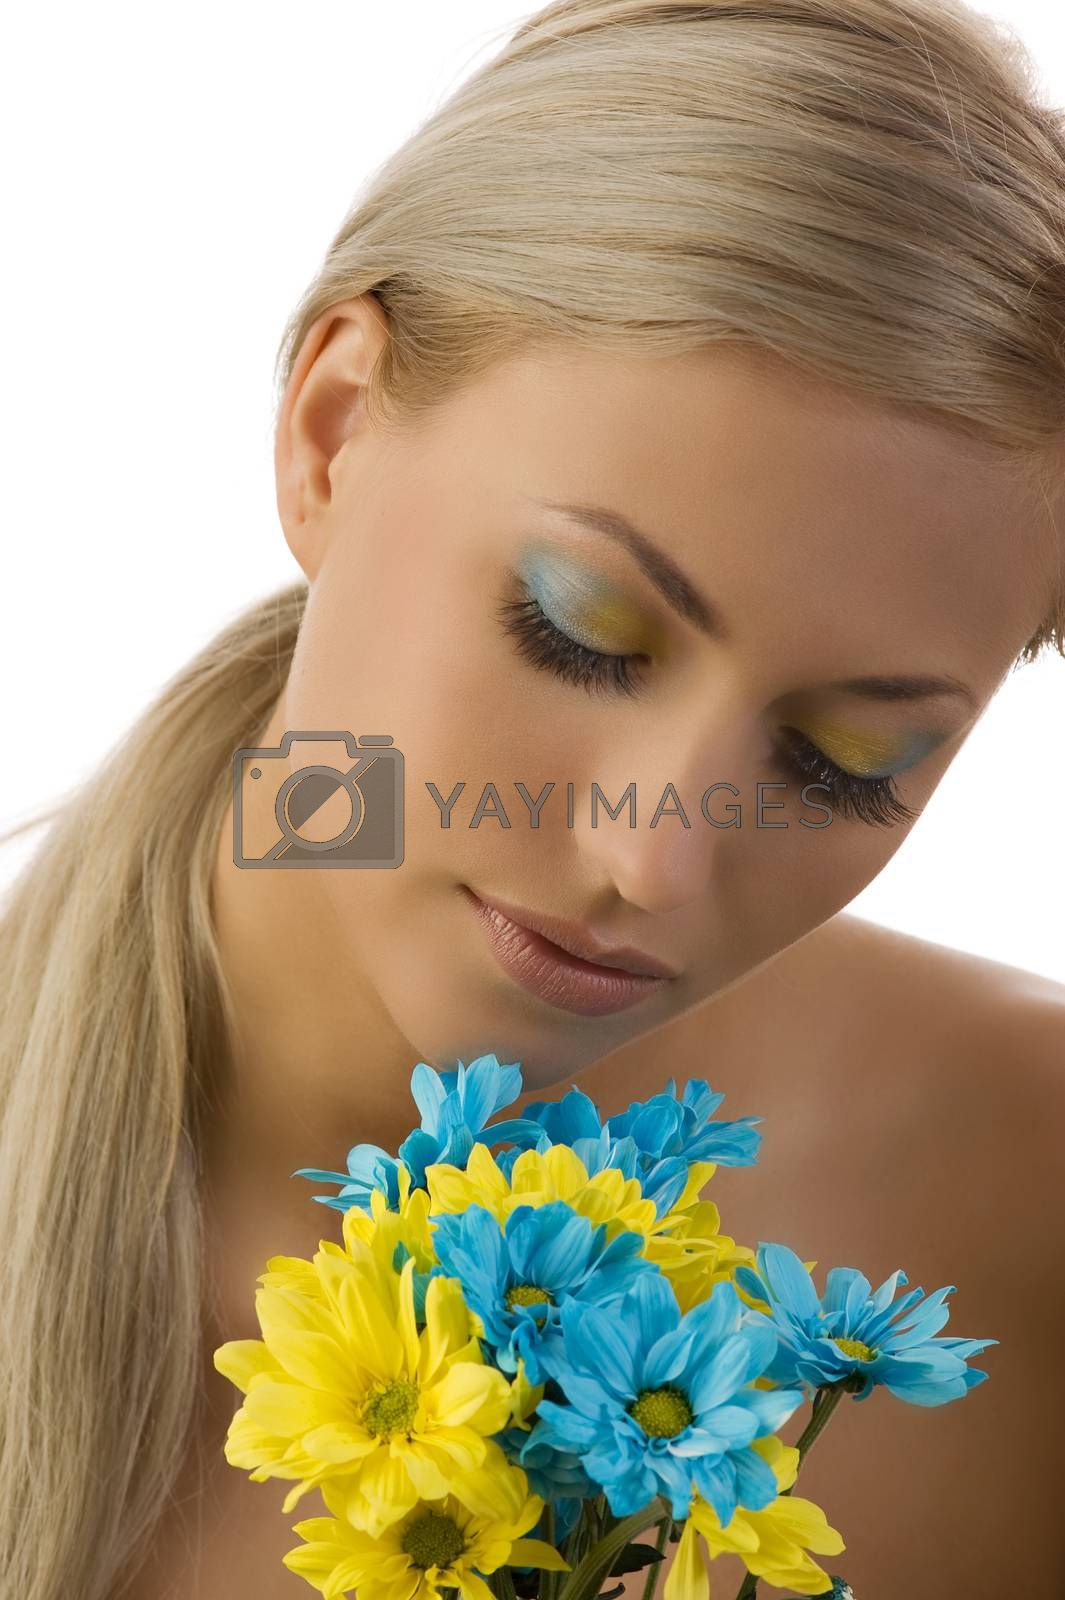 Royalty free image of cute girl with flower by fotoCD